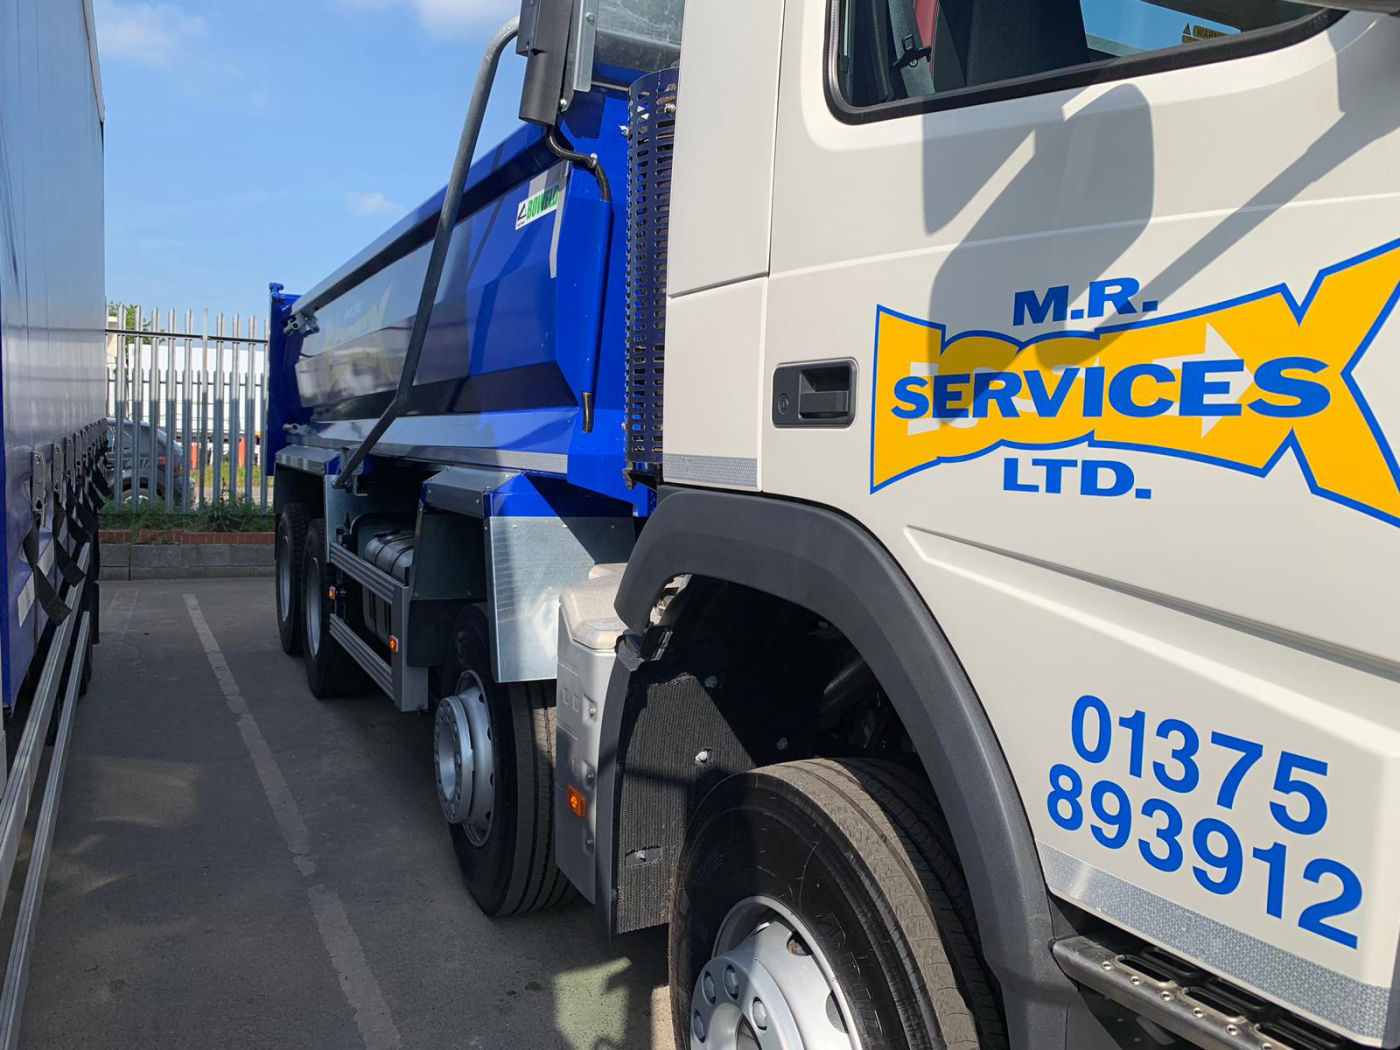 MR Services Essex